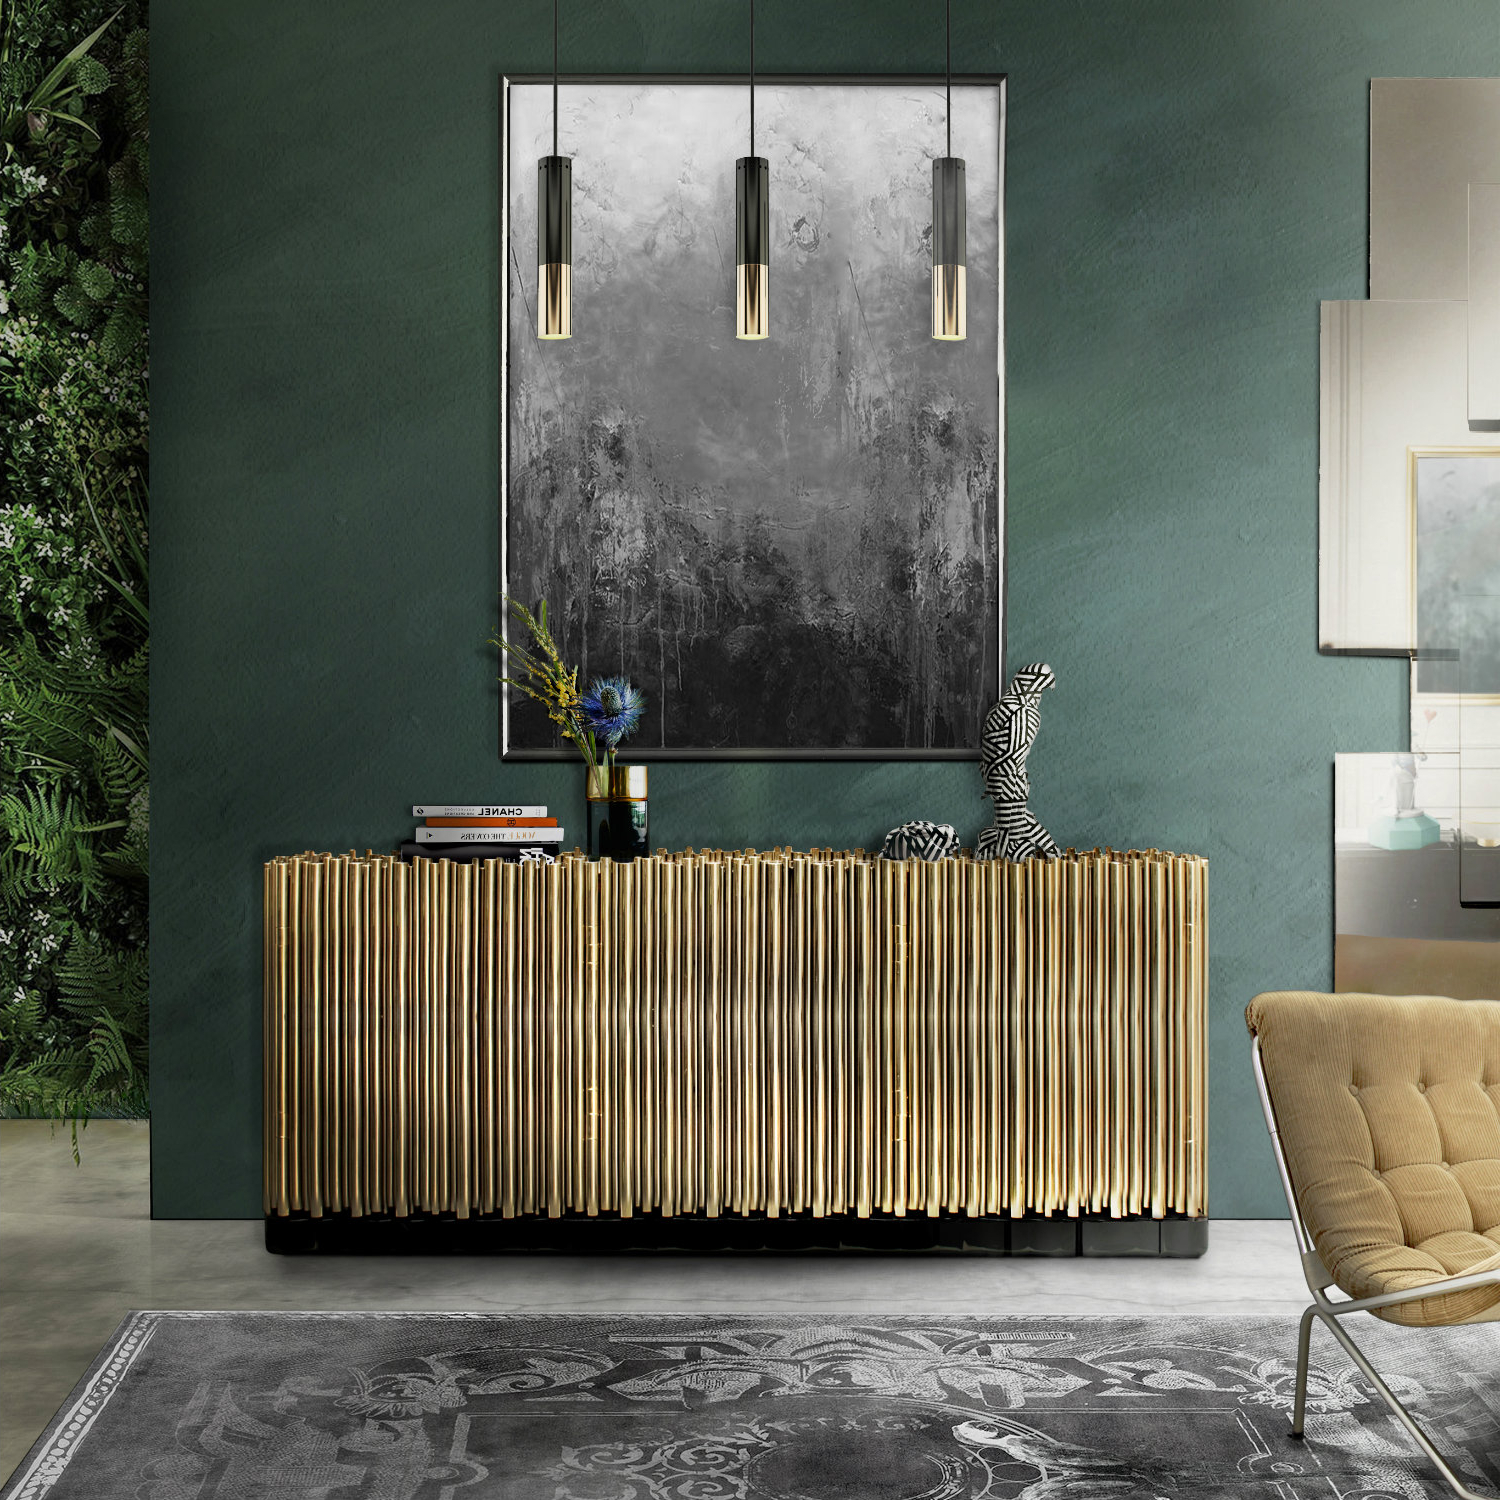 Well Liked Wattisham Sideboards With Regard To The Best Metal Sideboards For A Welcoming Entrance Foyer (View 19 of 20)